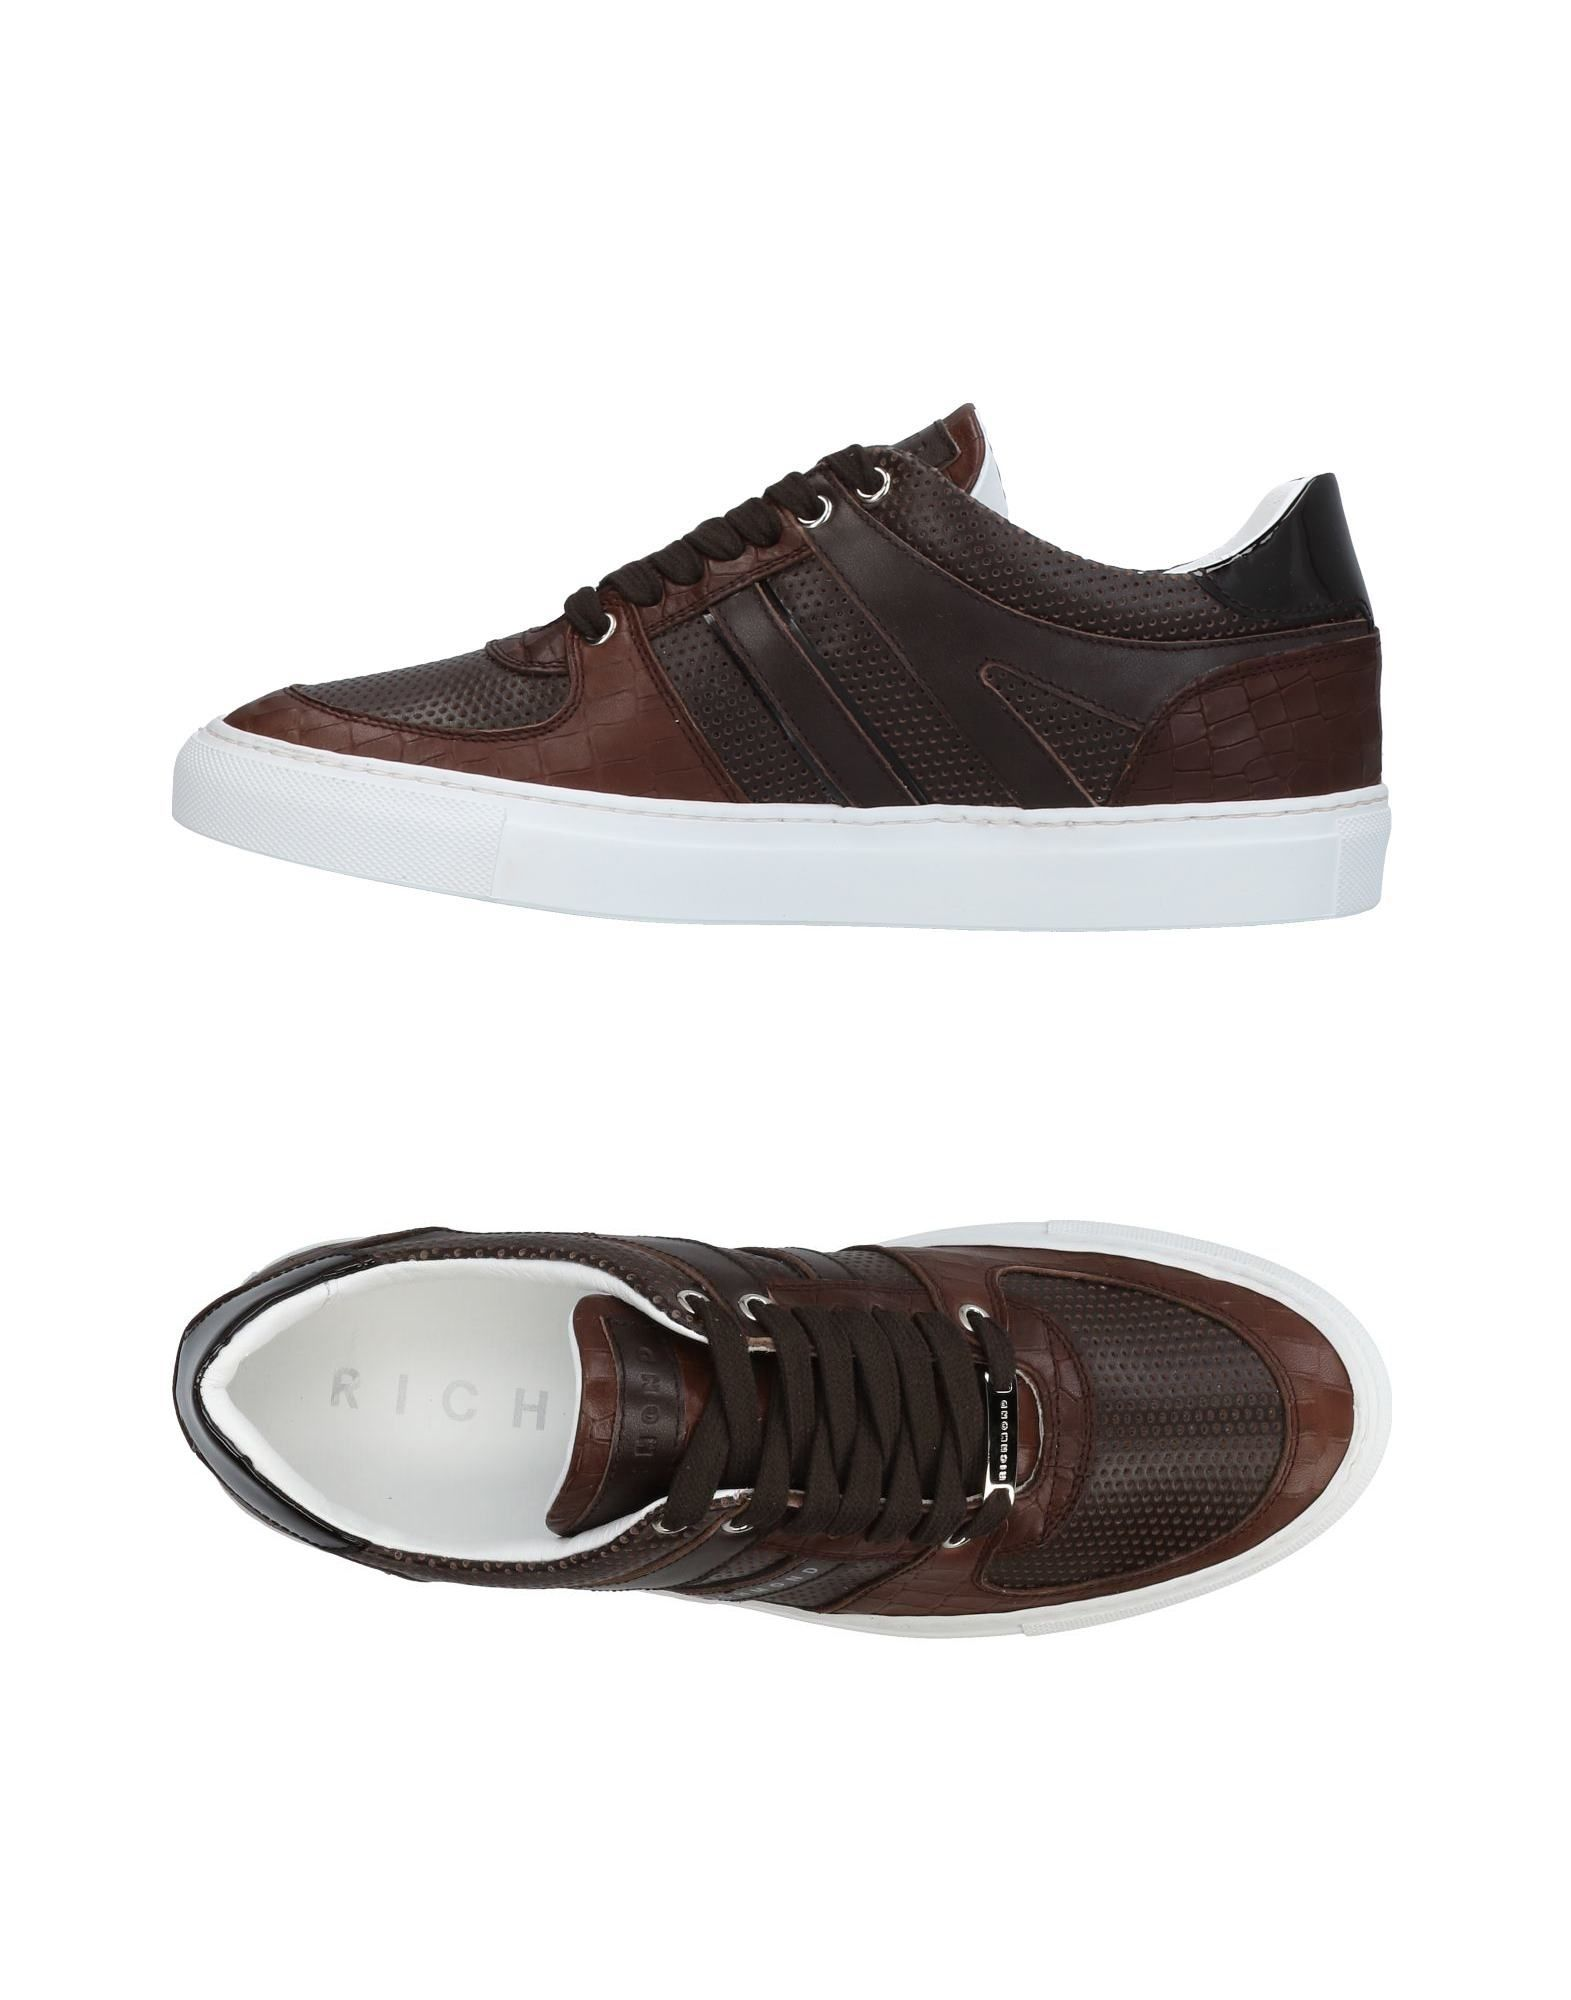 Moda Sneakers Richmond Uomo - 11425083RB